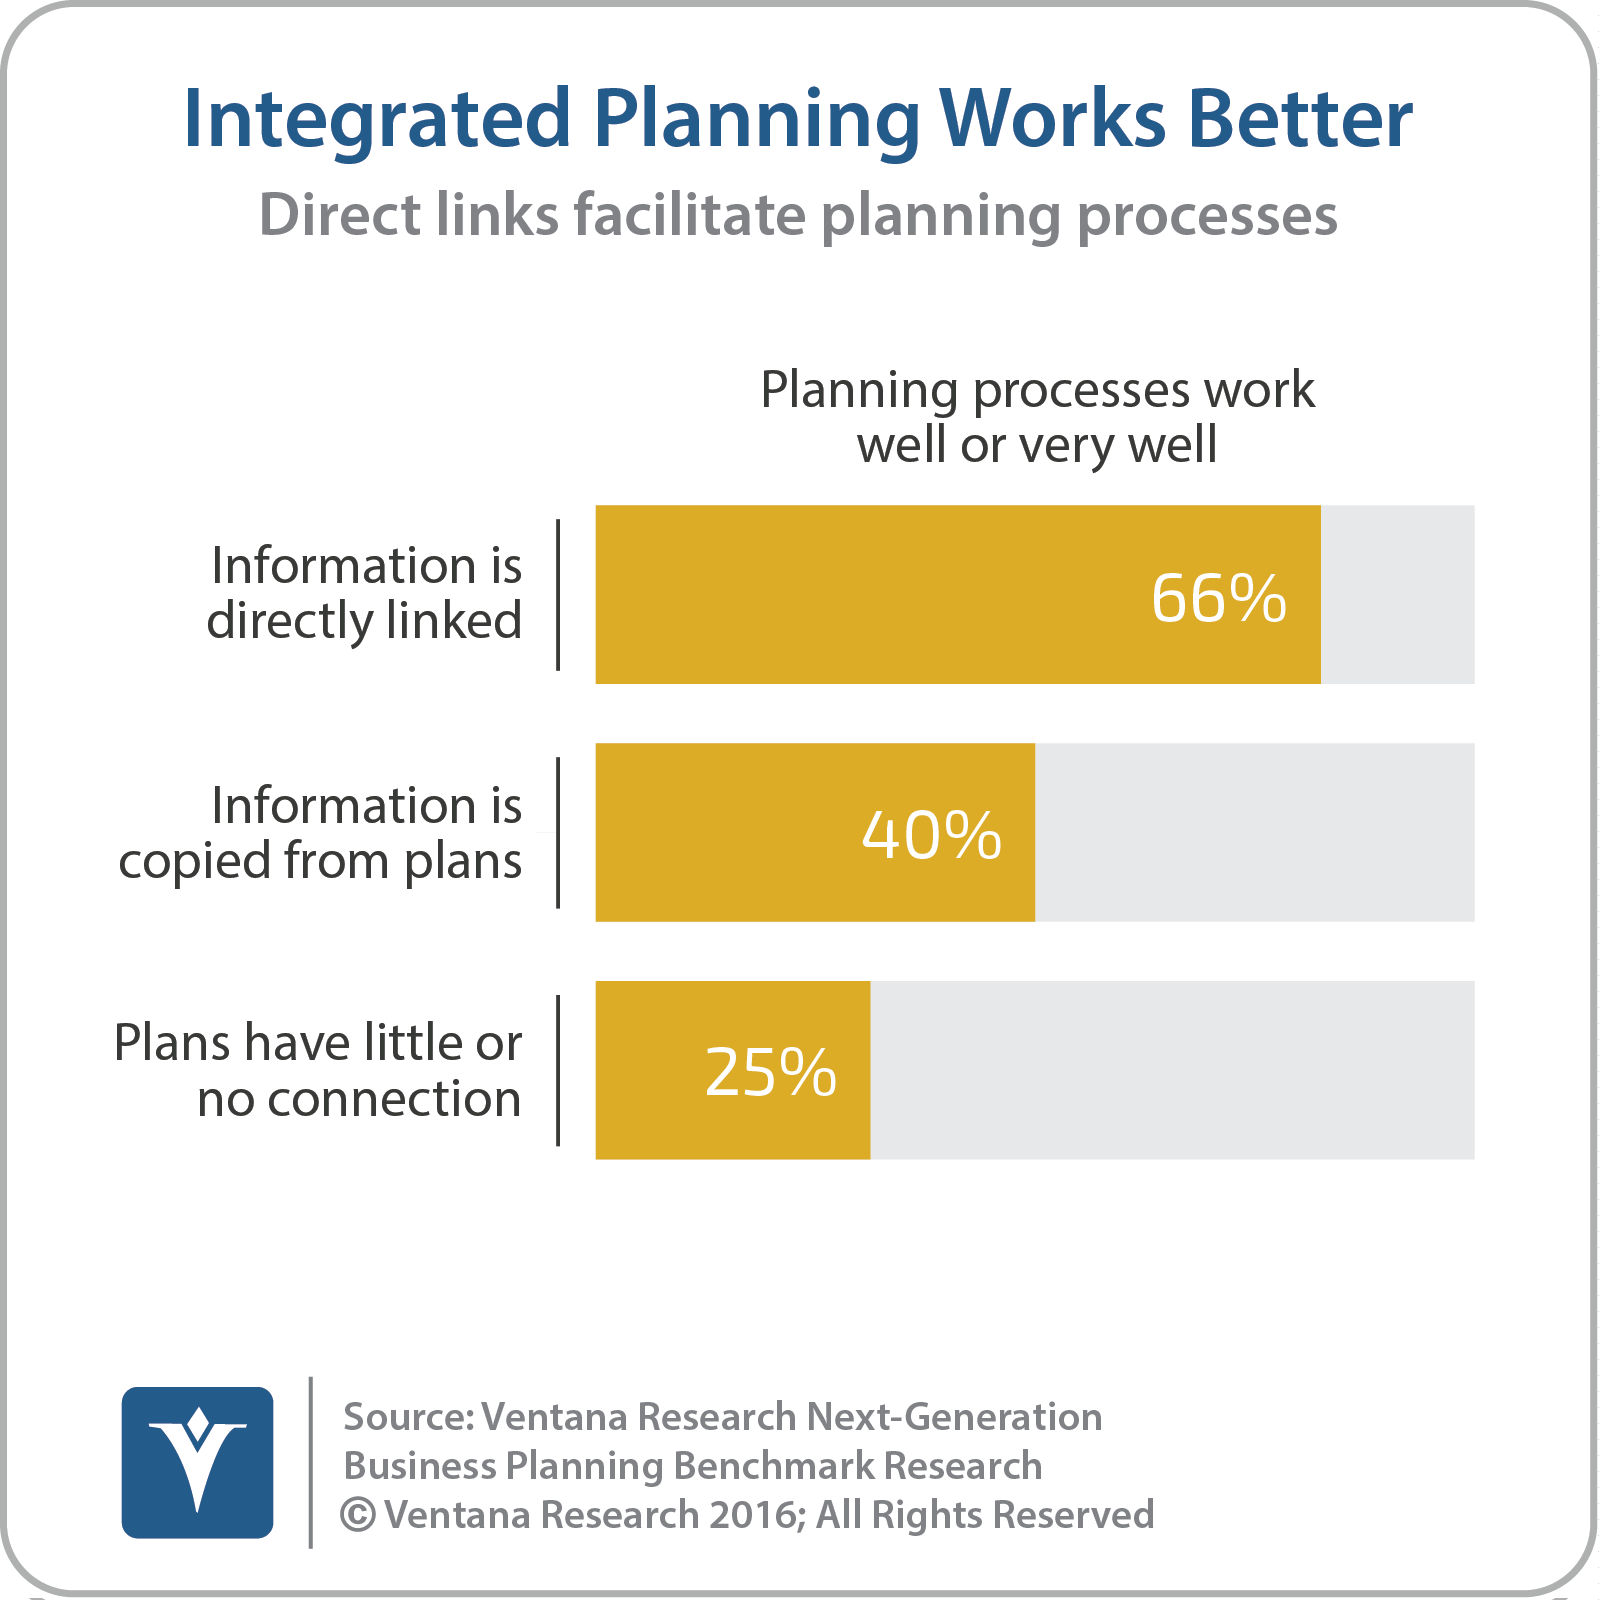 vr_NGBP_02_integrated_planning_works_better_update-3.png